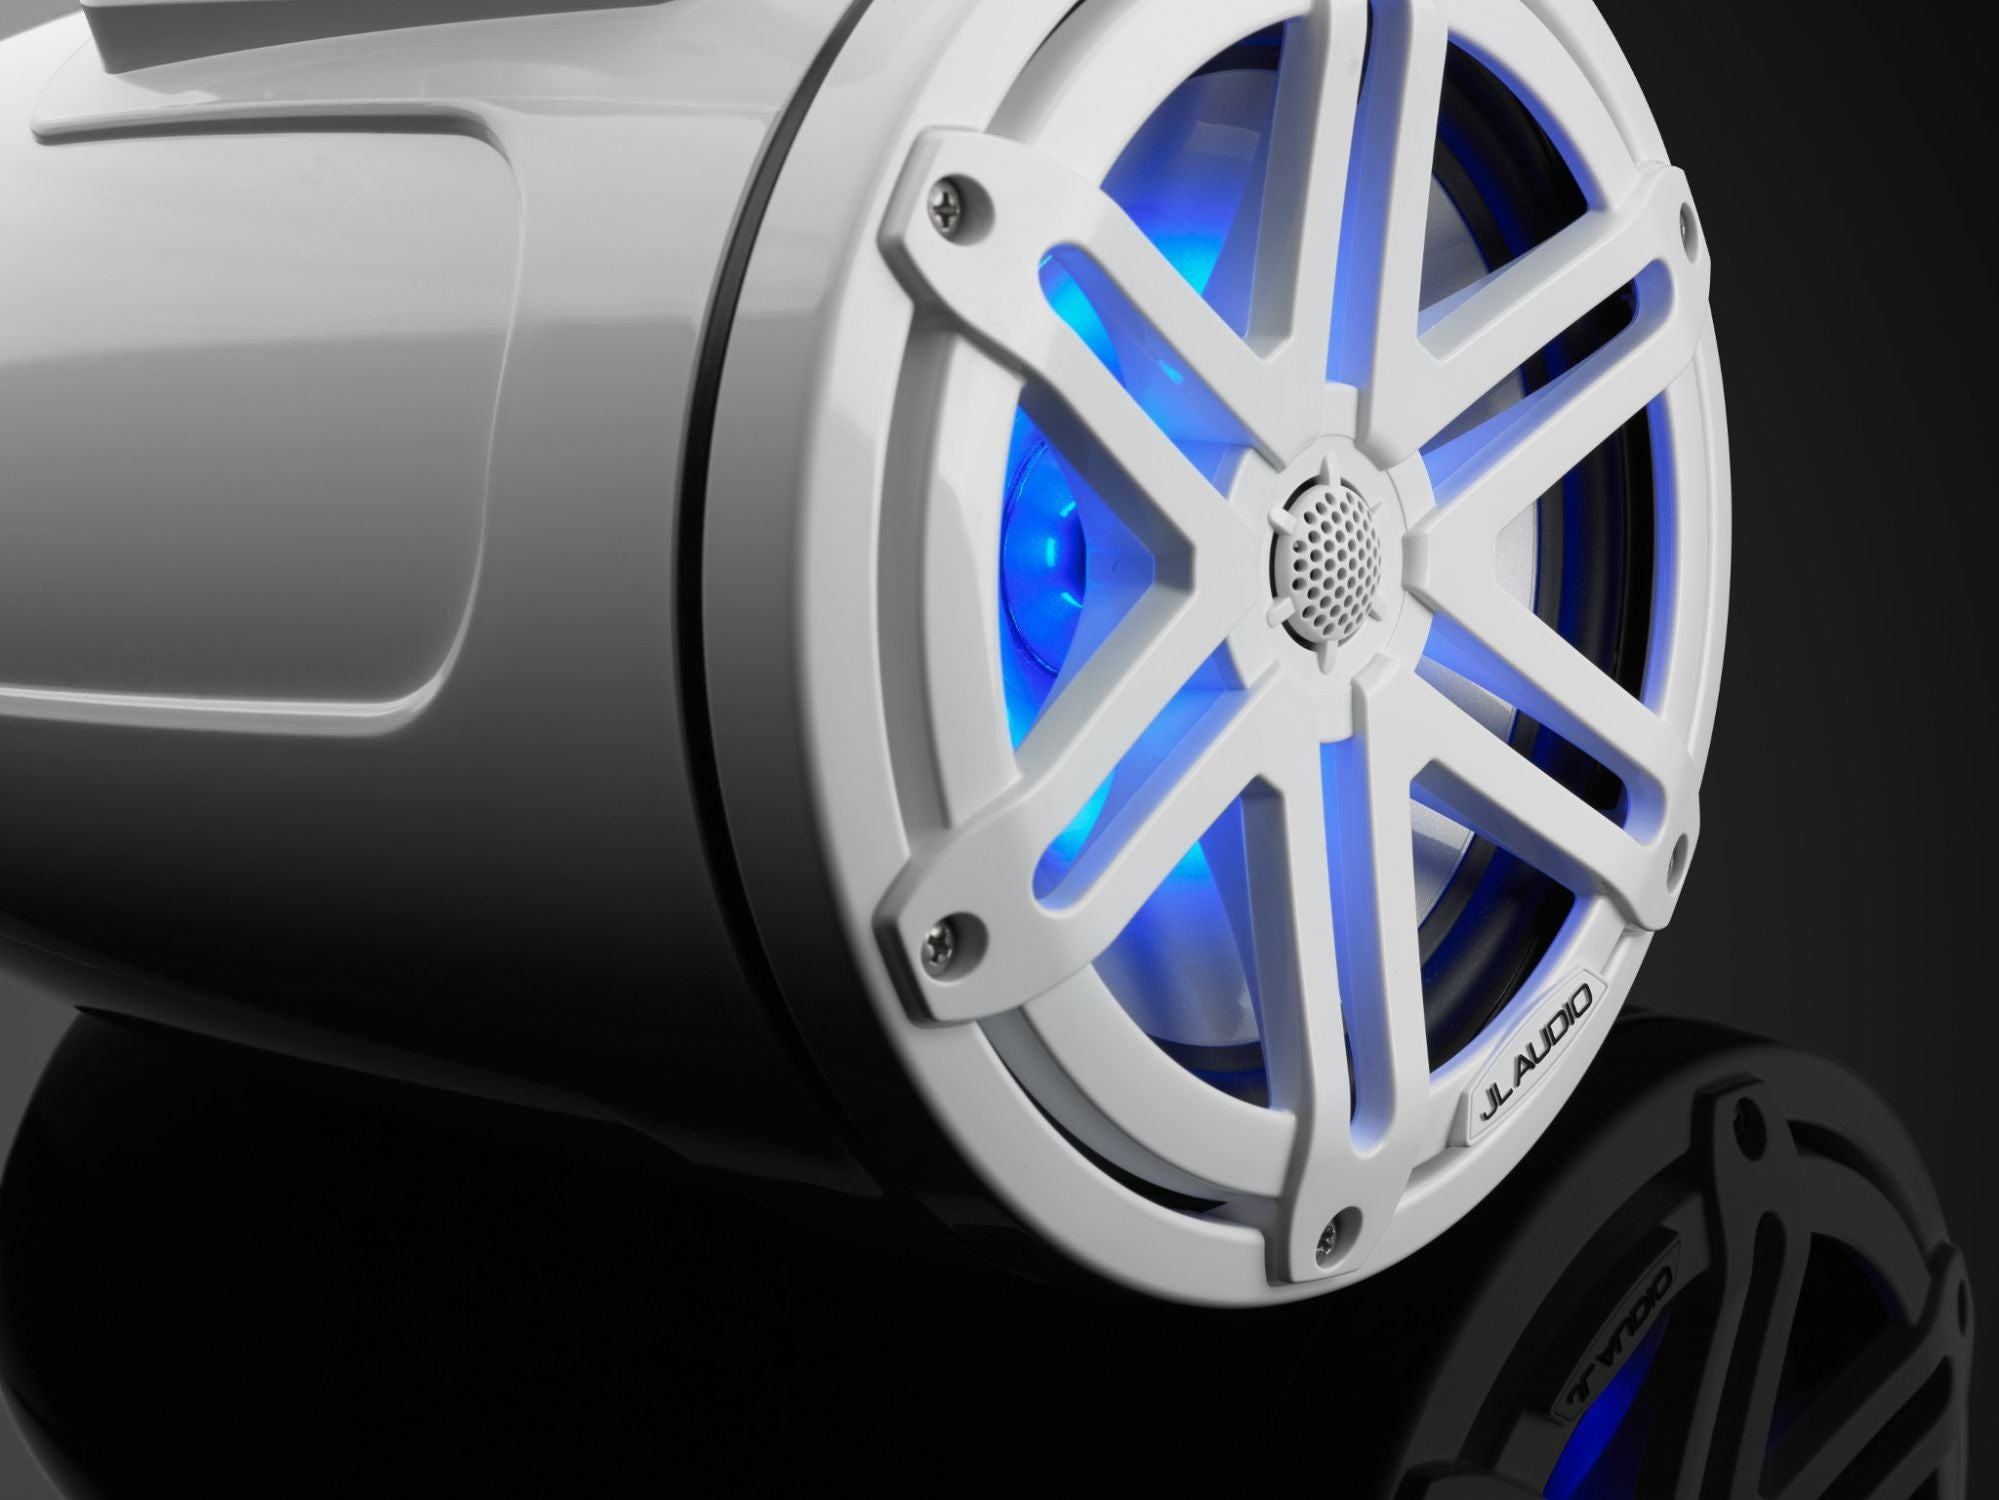 Detail of M3-770ETXv3-Gw-S-Gw-i Enclosed Speaker Lit with Blue